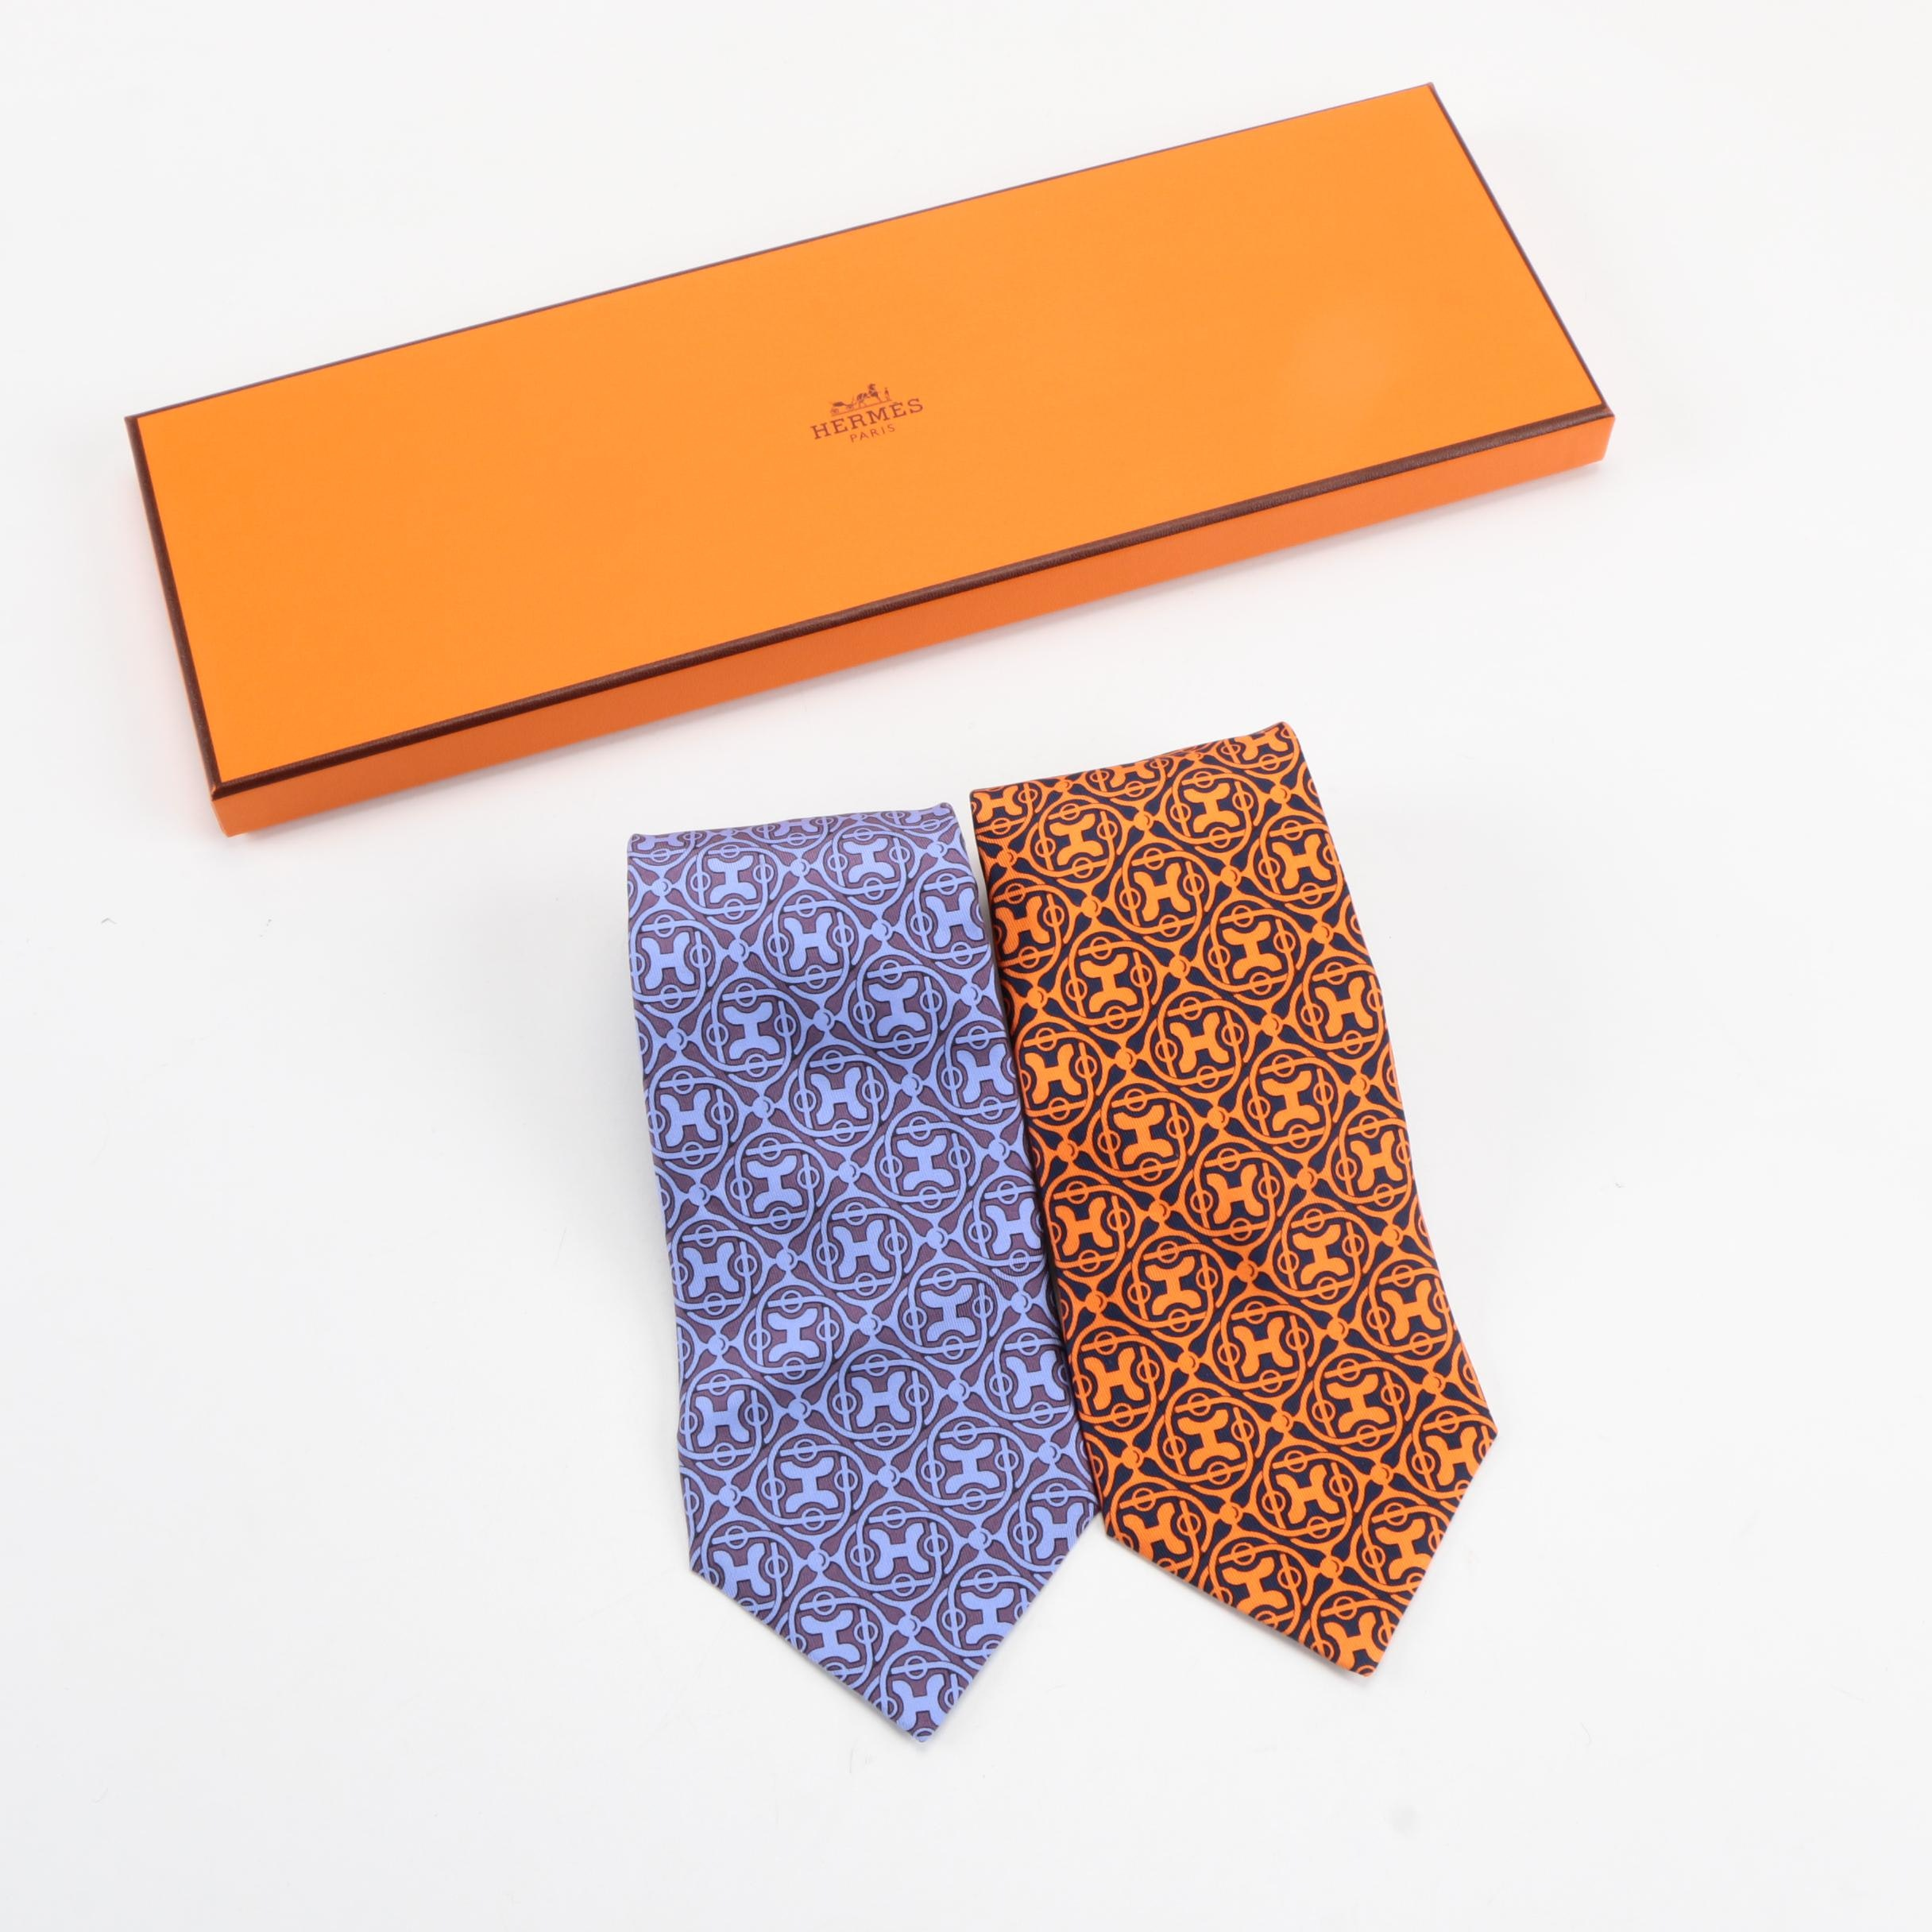 Hermès Silk Ties in Orange and Blue